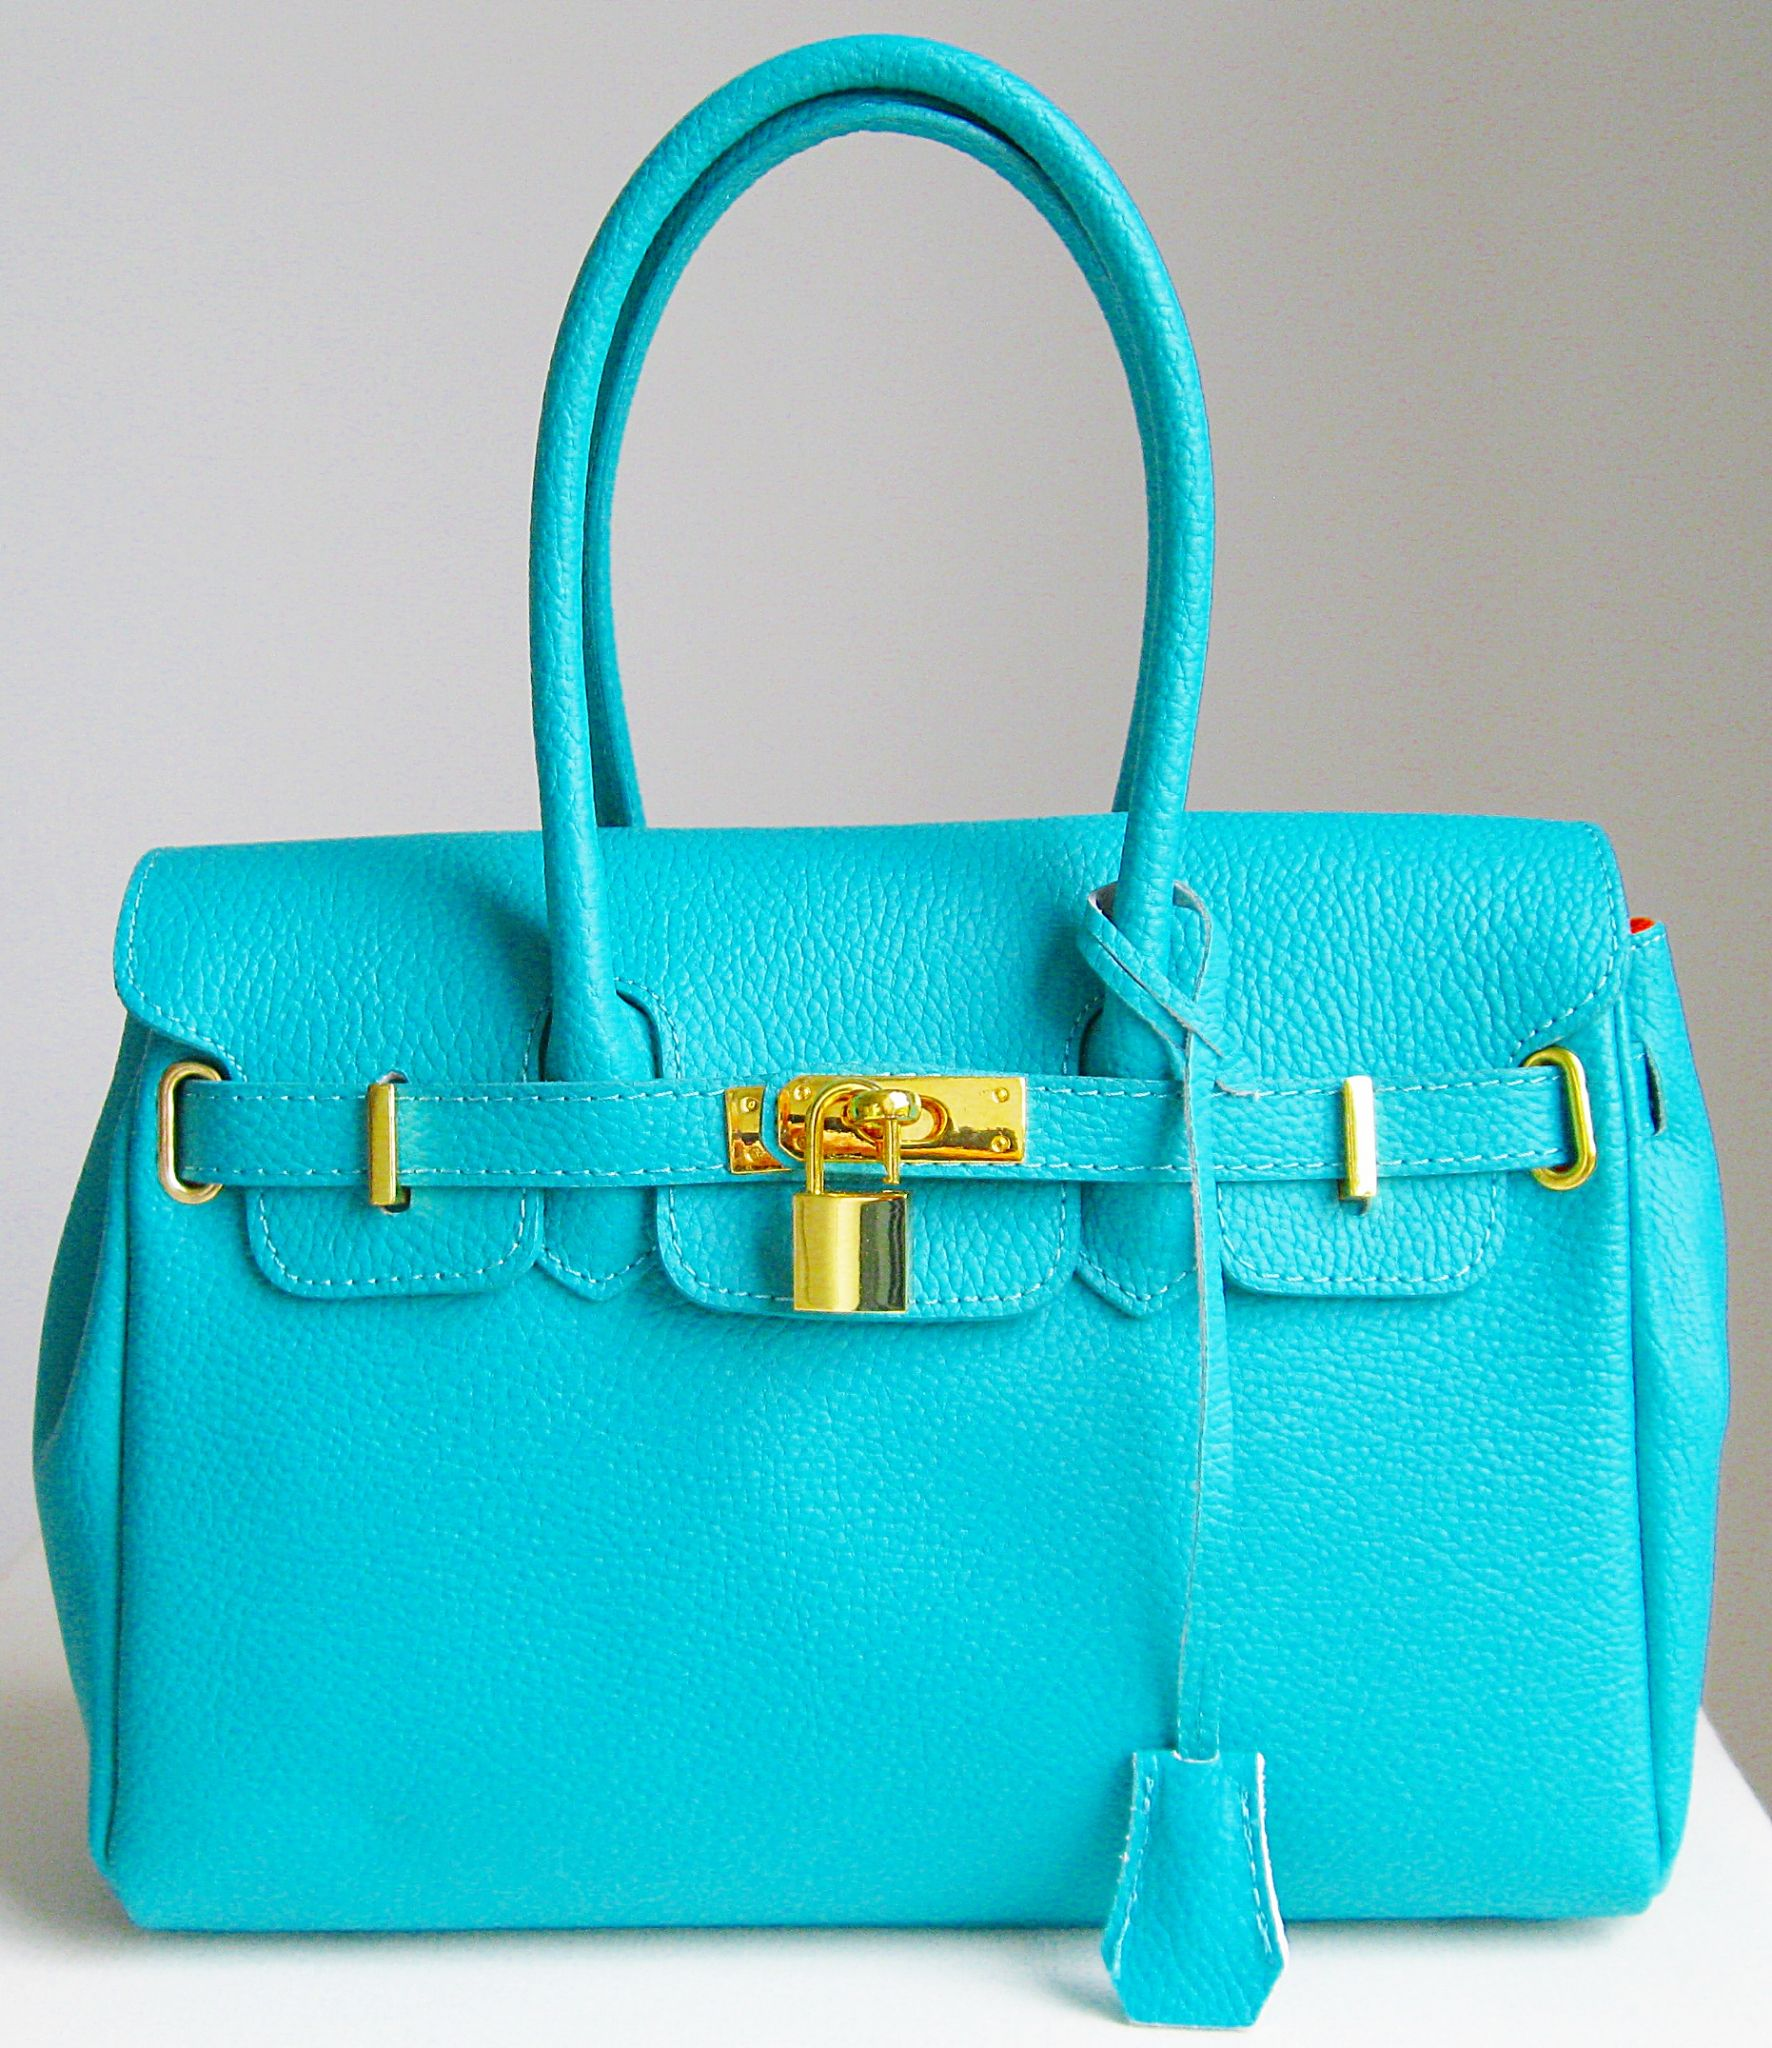 e02fa42cc7 The results of the research turquoise leather handbag